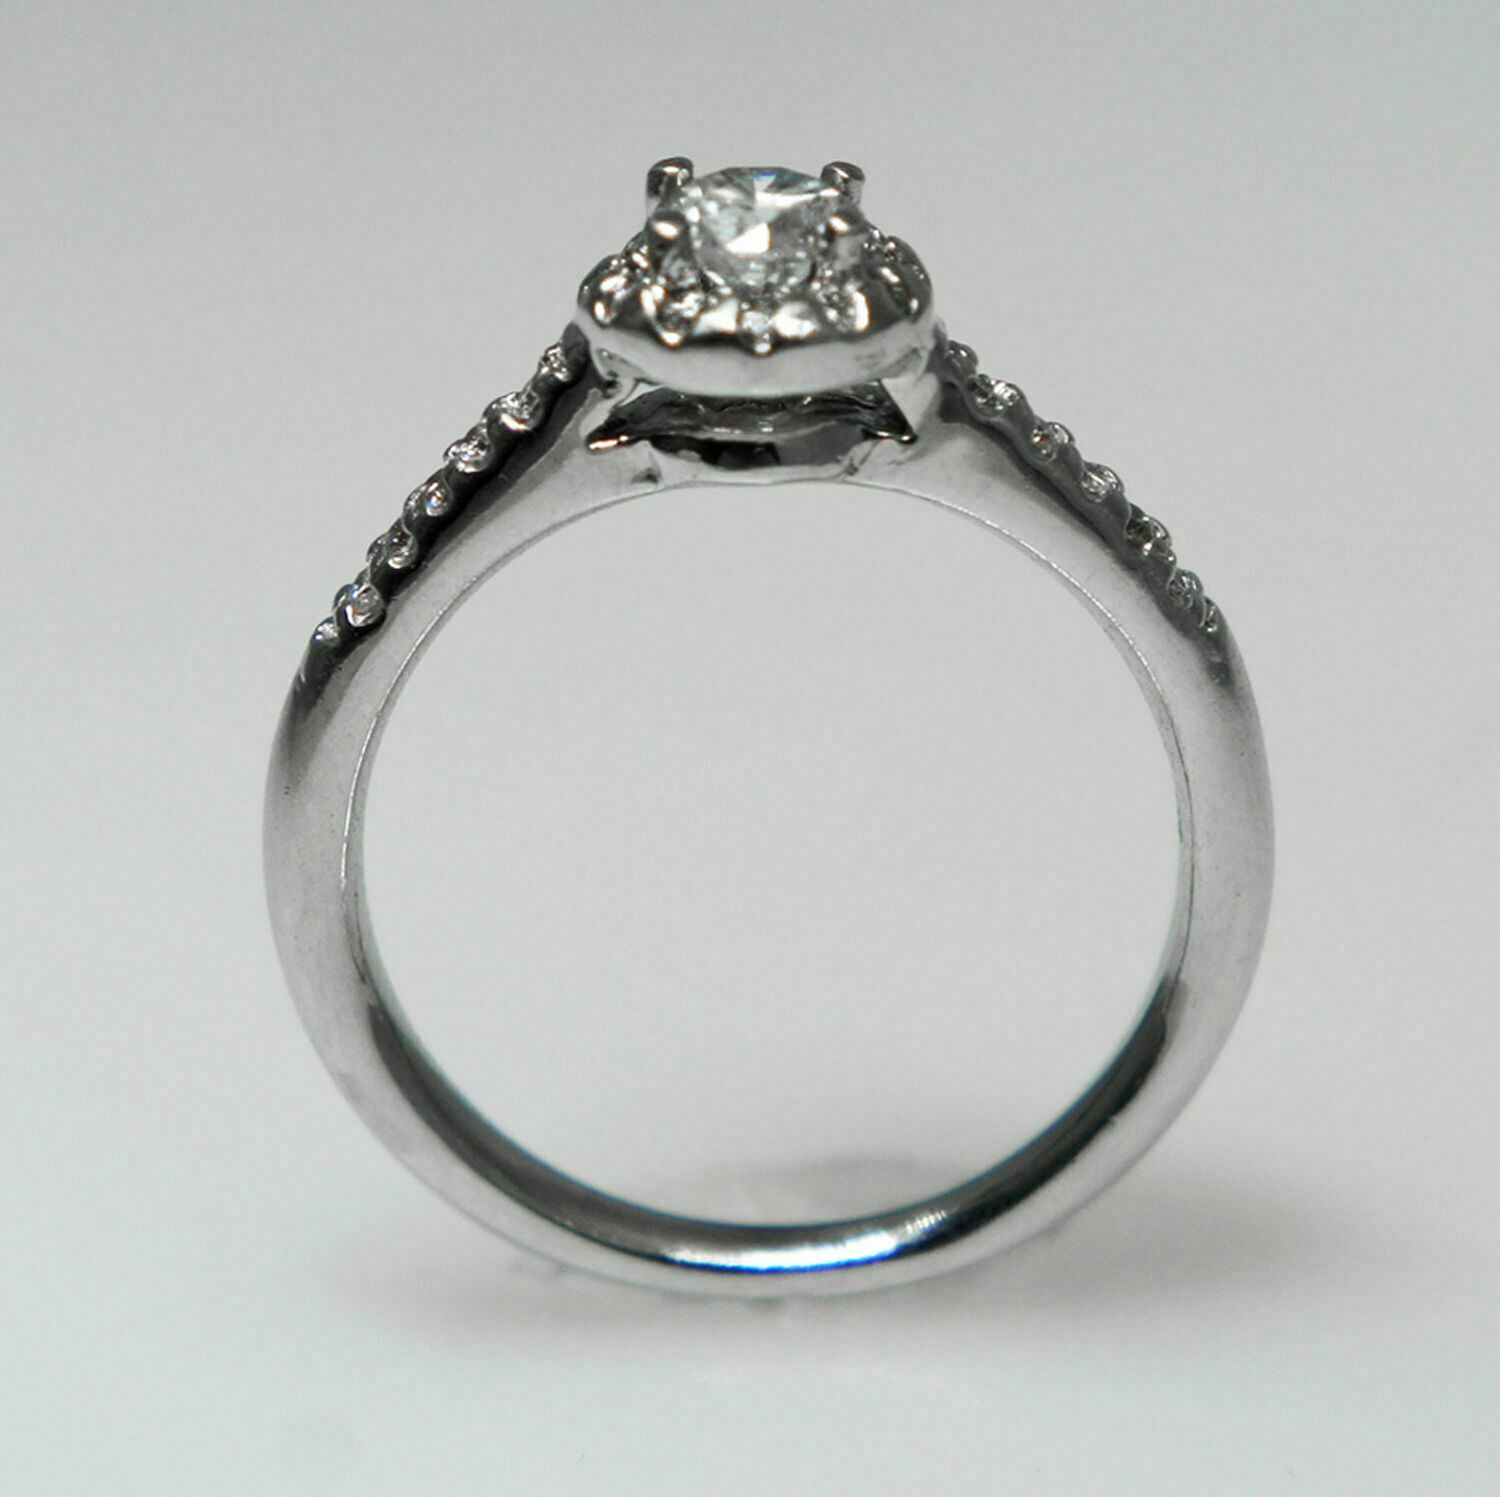 .95 TCW Round Cut Diamond Solitaire Engagement Ring 14K White Gold